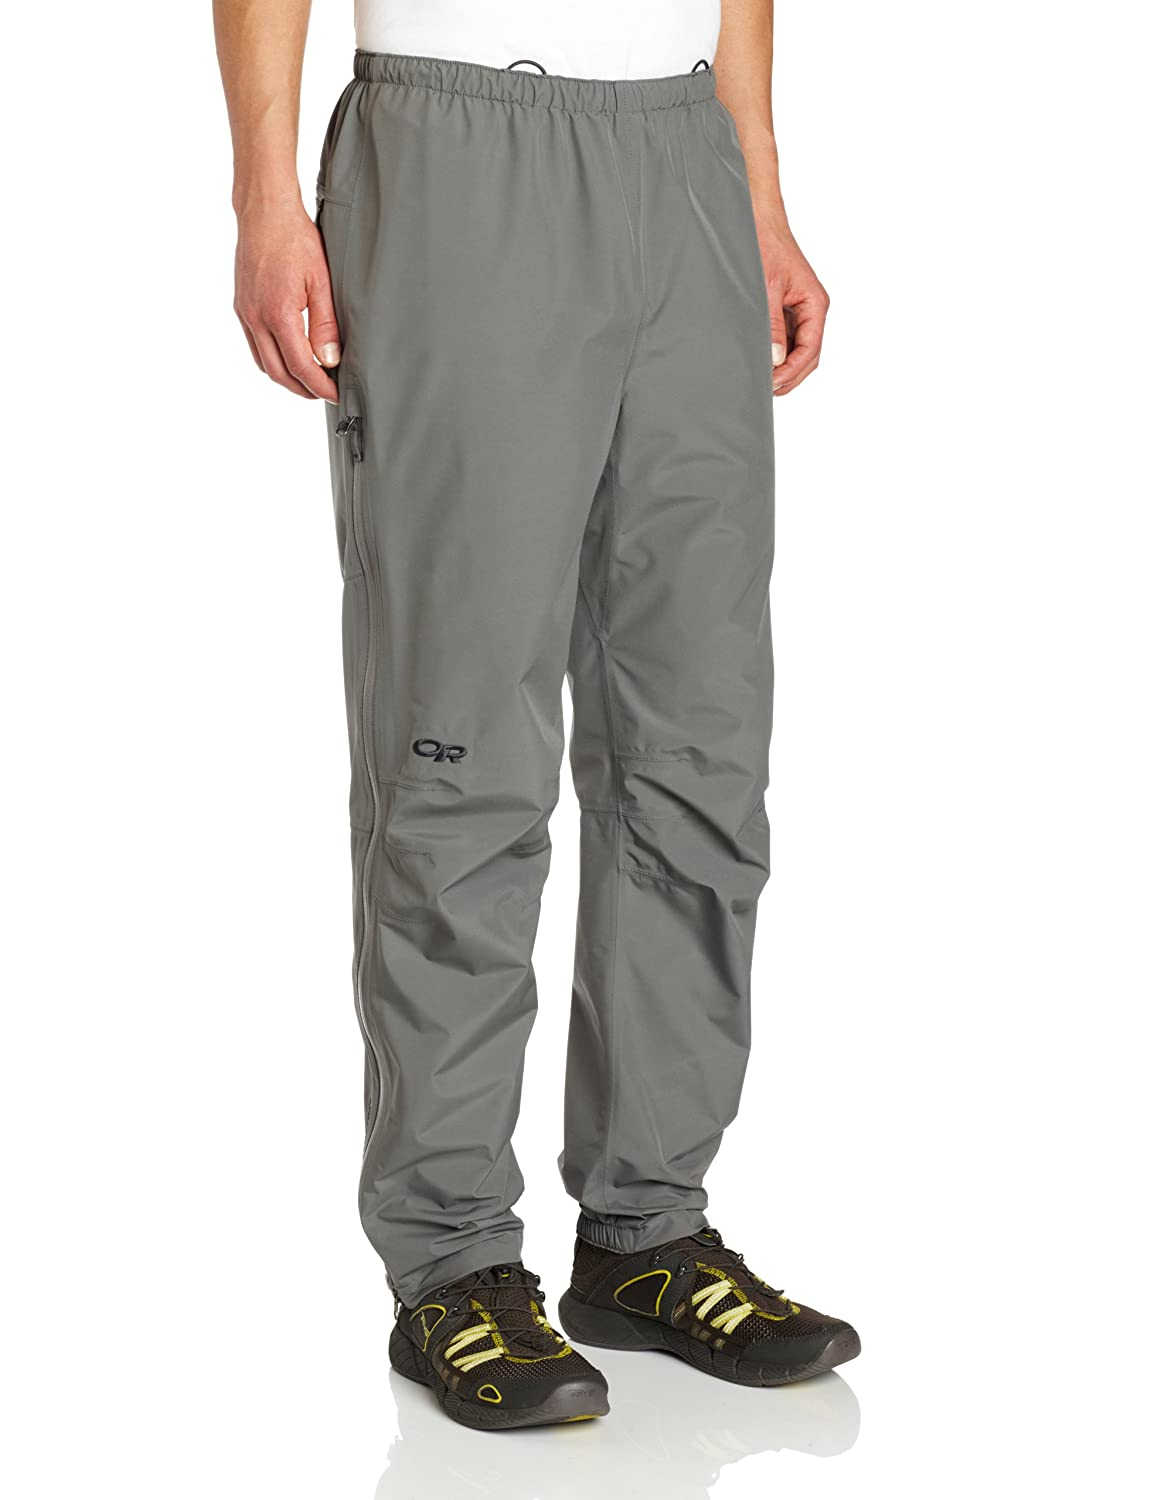 Outdoor Research Foray Pantaloni da Uomo